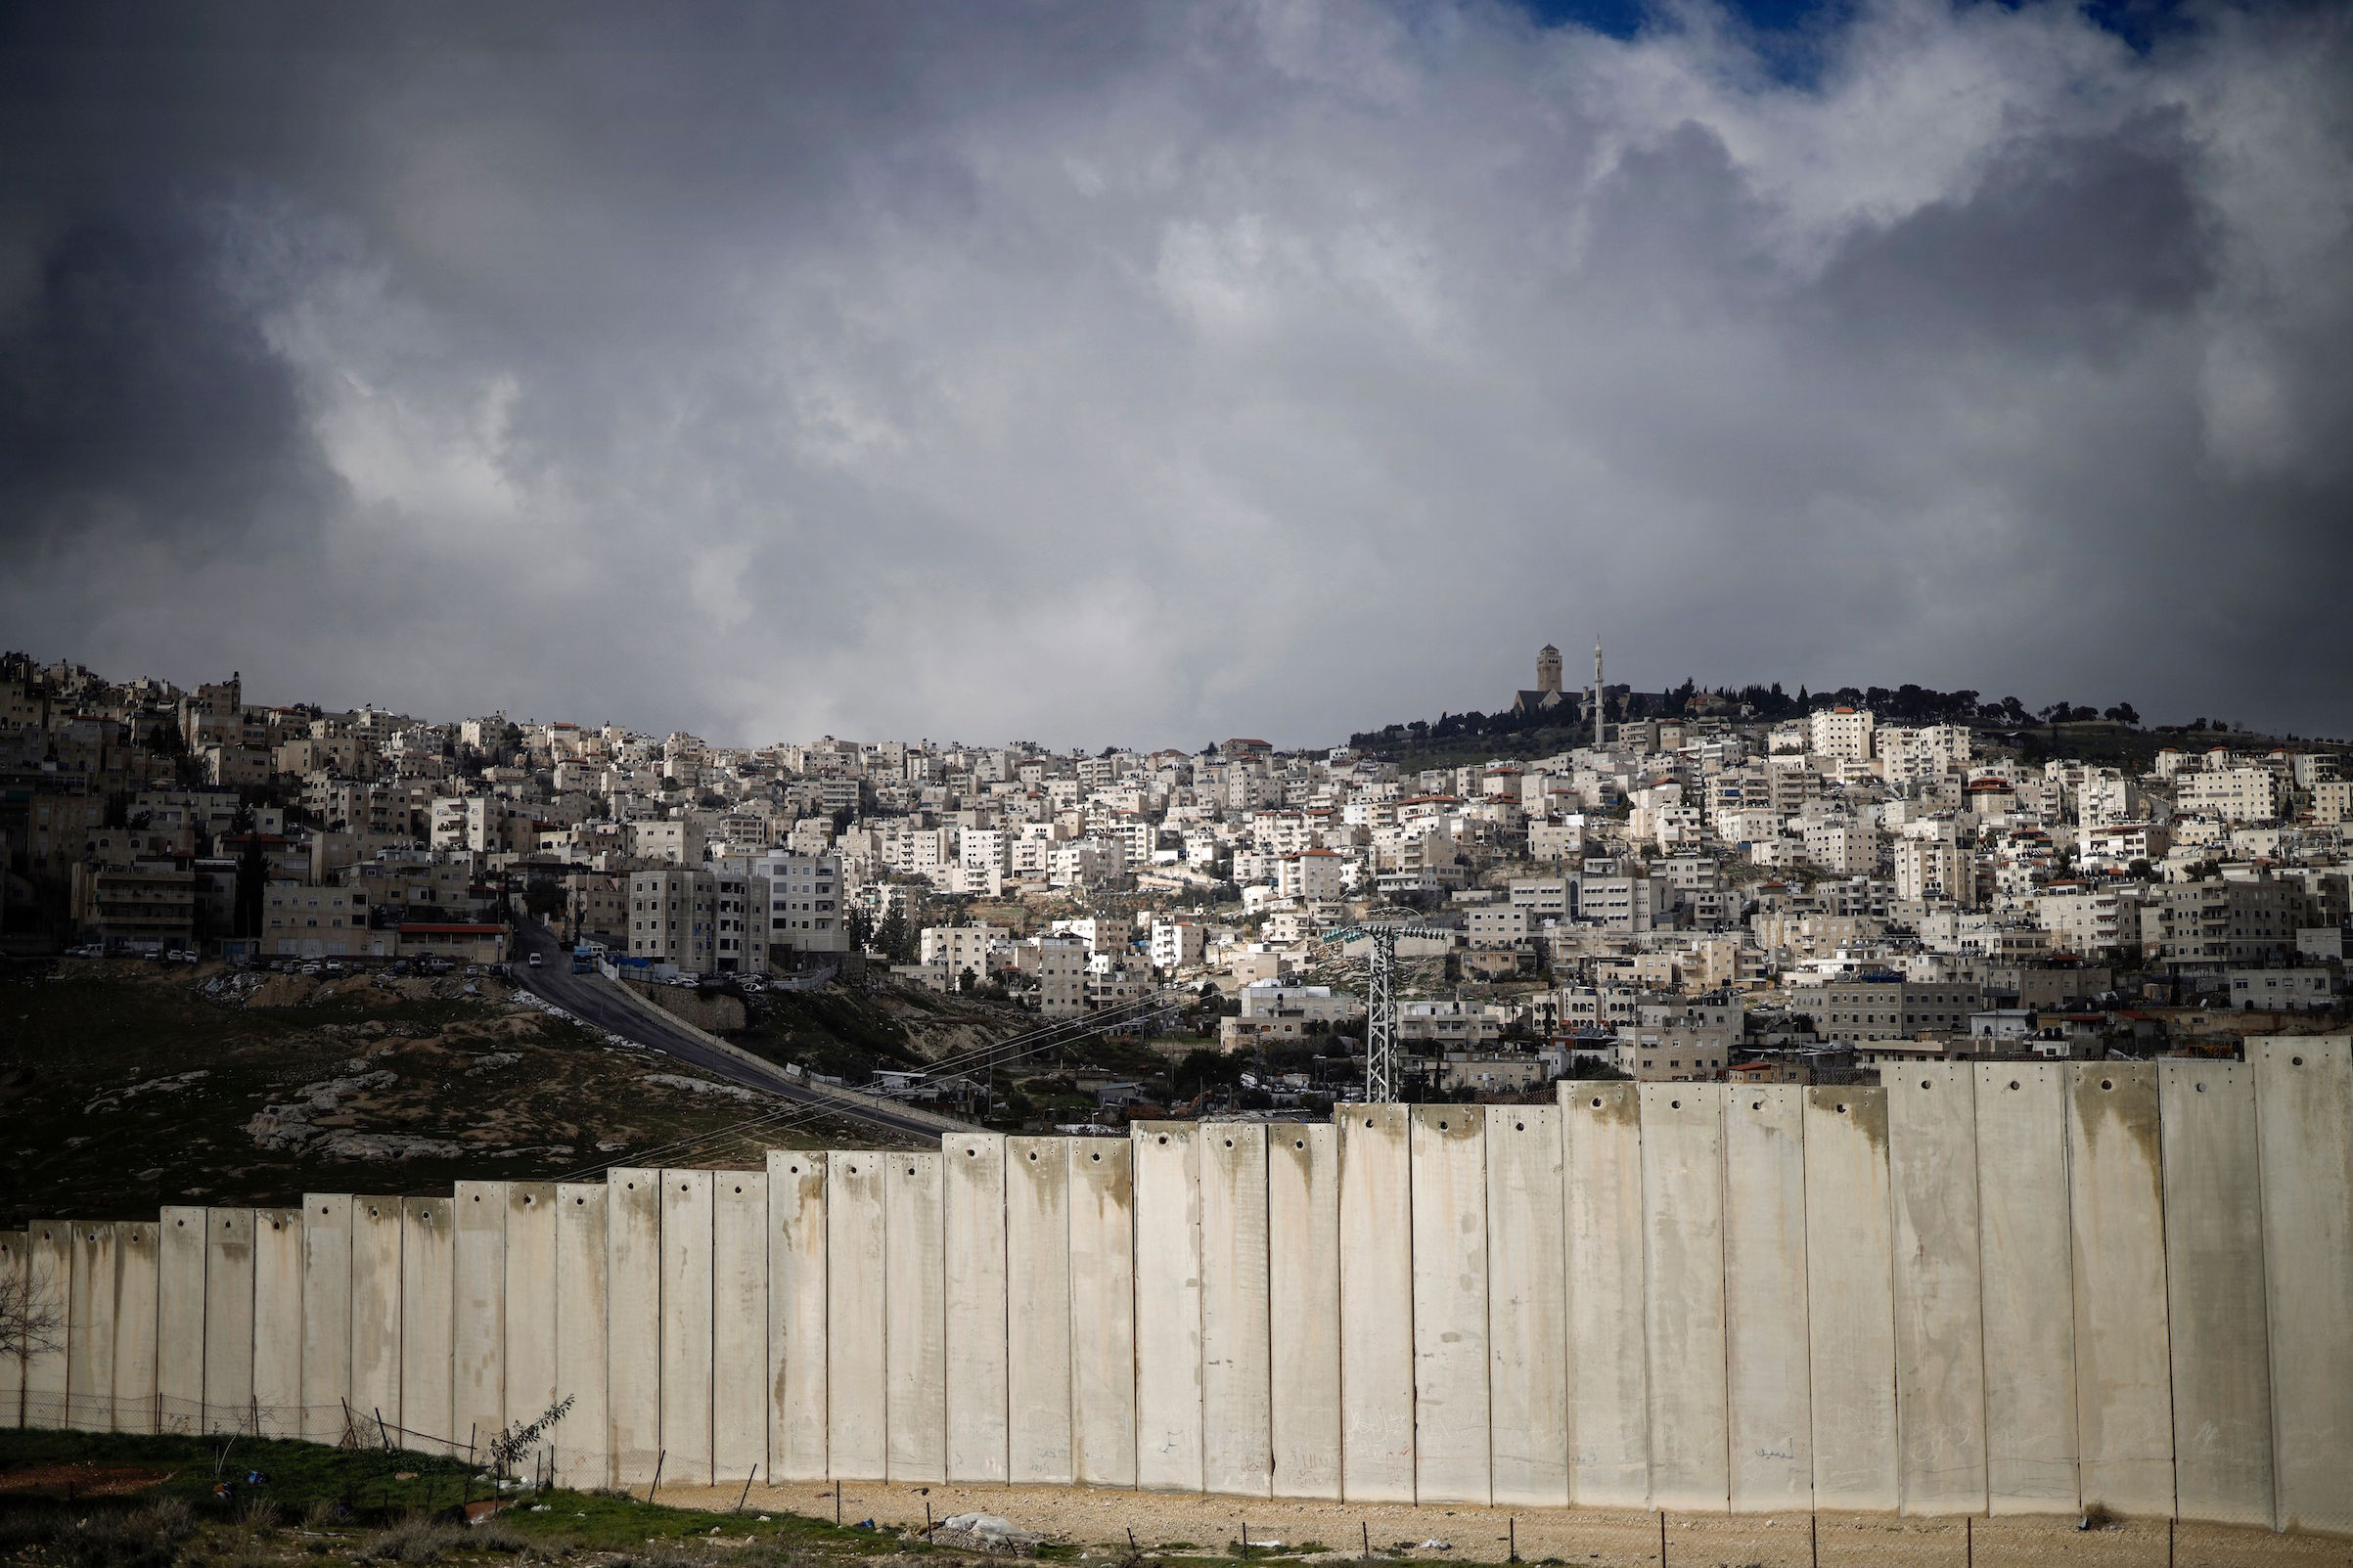 This picture taken on Jan. 17, 2019, shows the controversial barrier separating the Palestinian West Bank village of Eizariya (foreground) and Jerusalem (background).